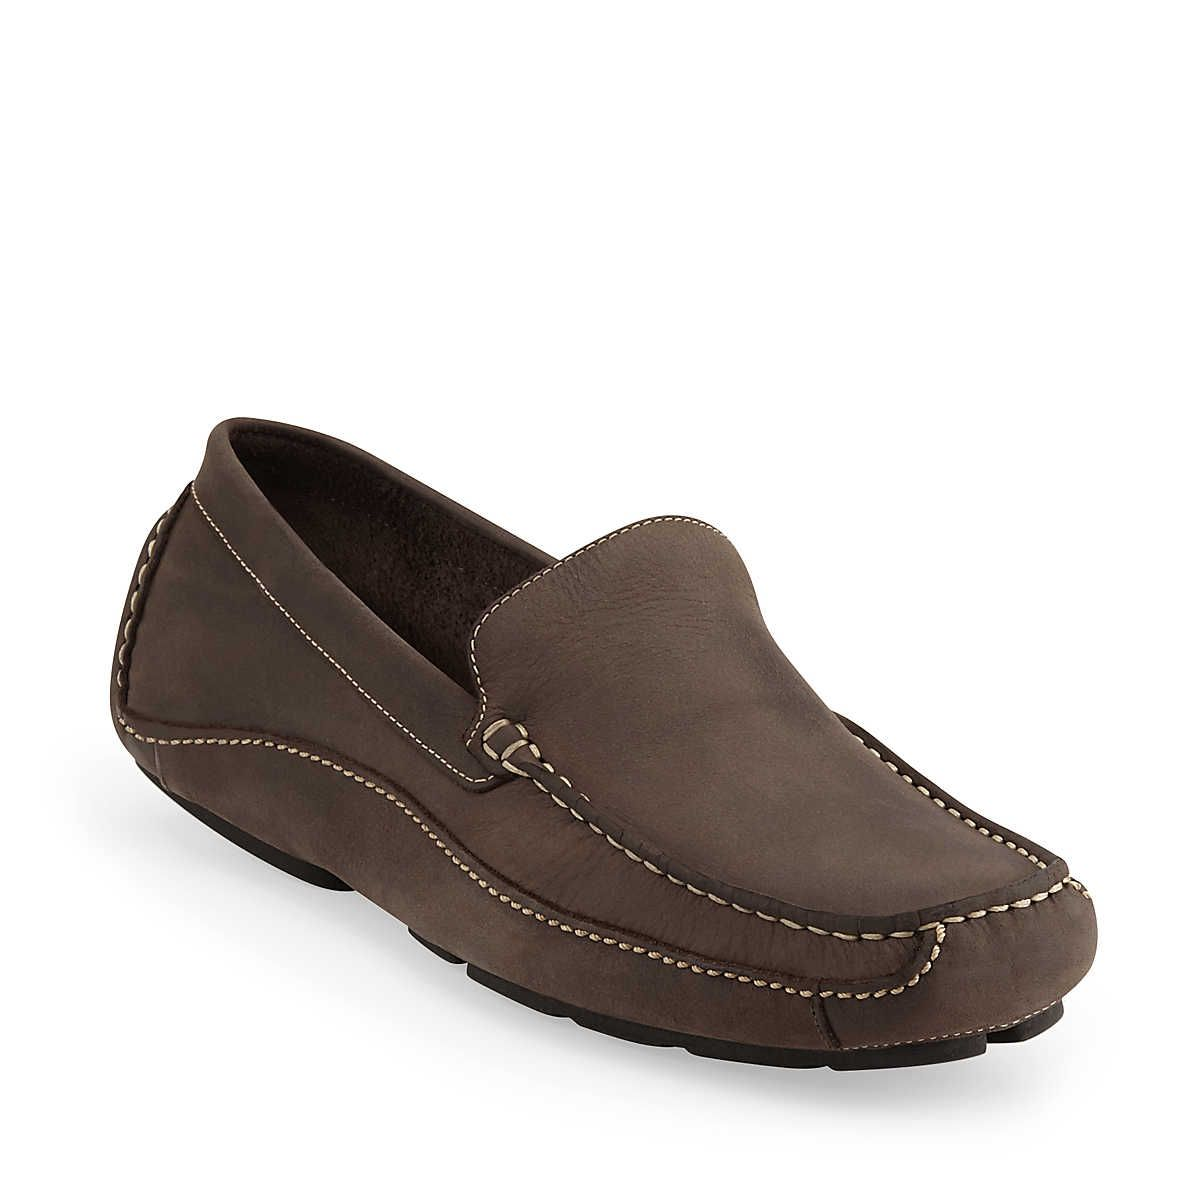 Clarks® Shoes Official Site - Comfortable Shoes, Boots & More